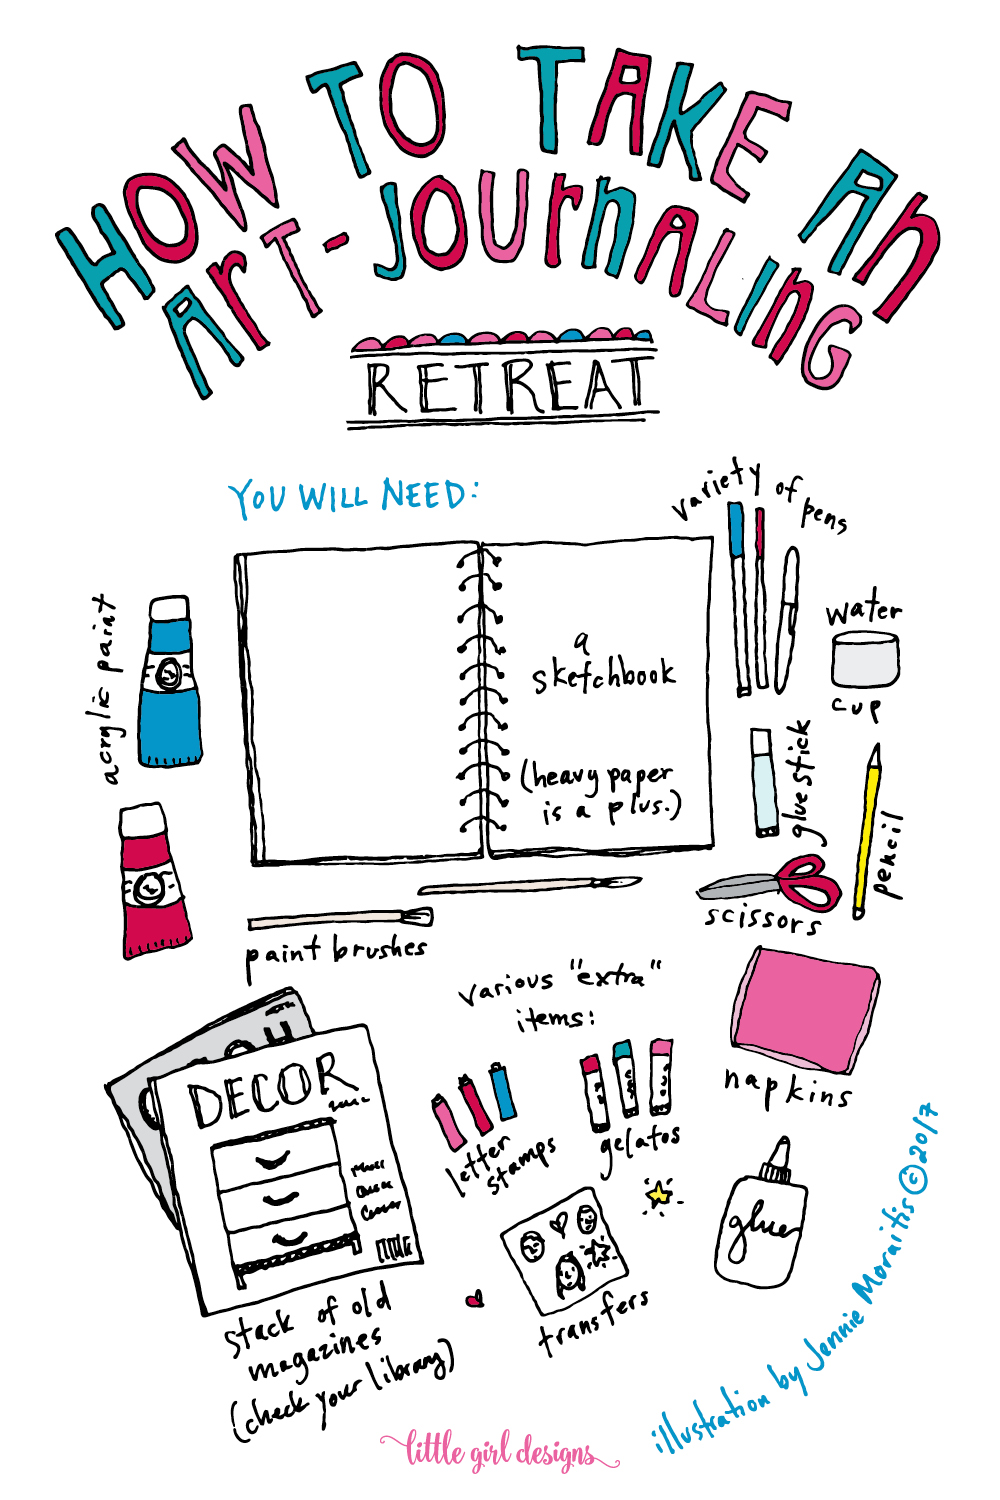 Learn how to create your own art-journaling retreat!